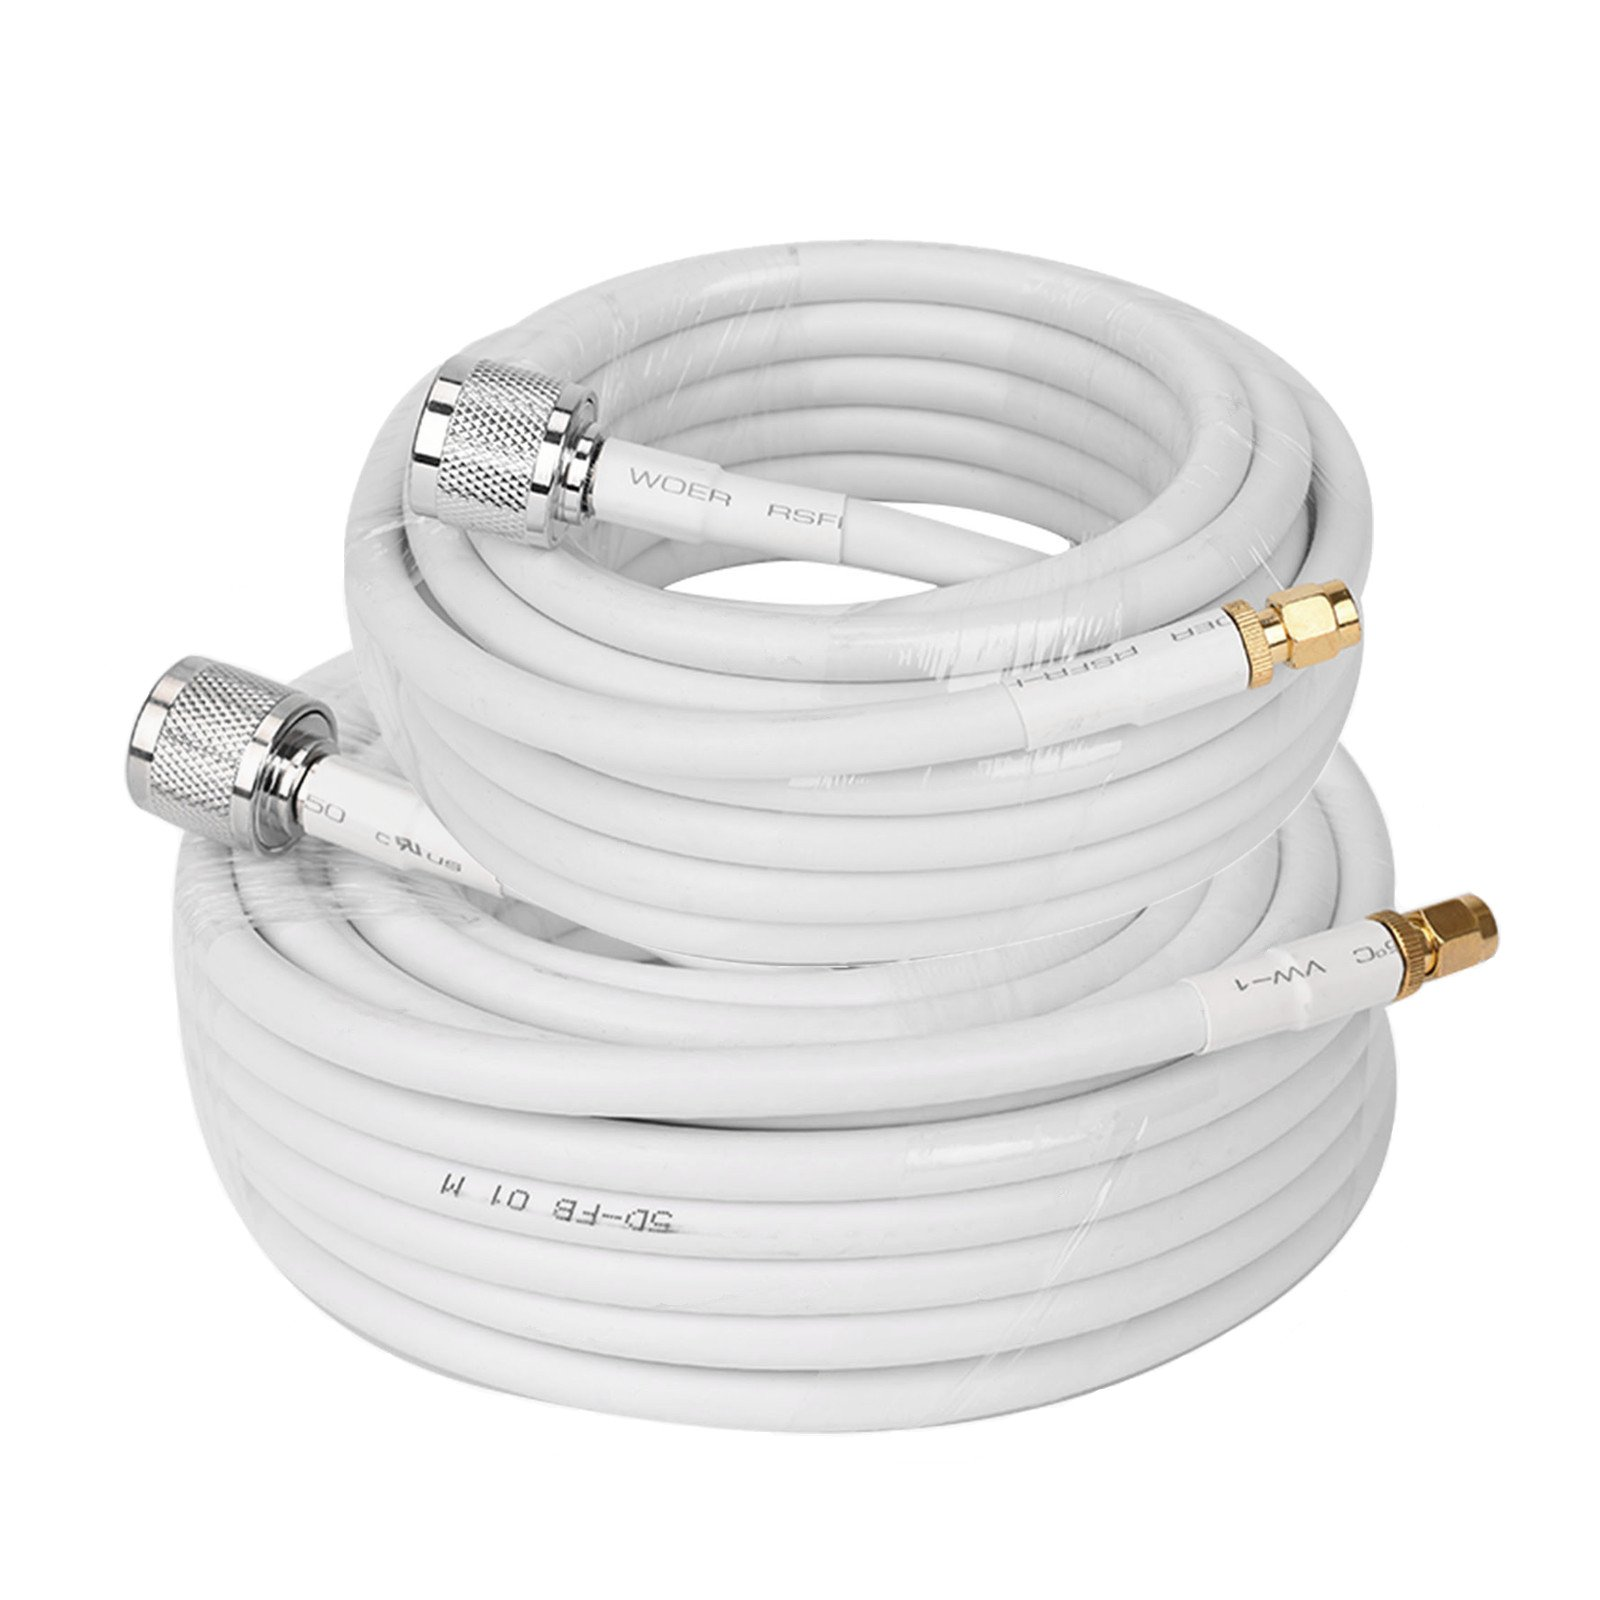 Verizon 4G Signal Booster LTE Cell Phone Repeater Band 13 Verizon 700MHz FDD with Panel Antenna Kit (White Cable) by Mingcoll (Image #10)